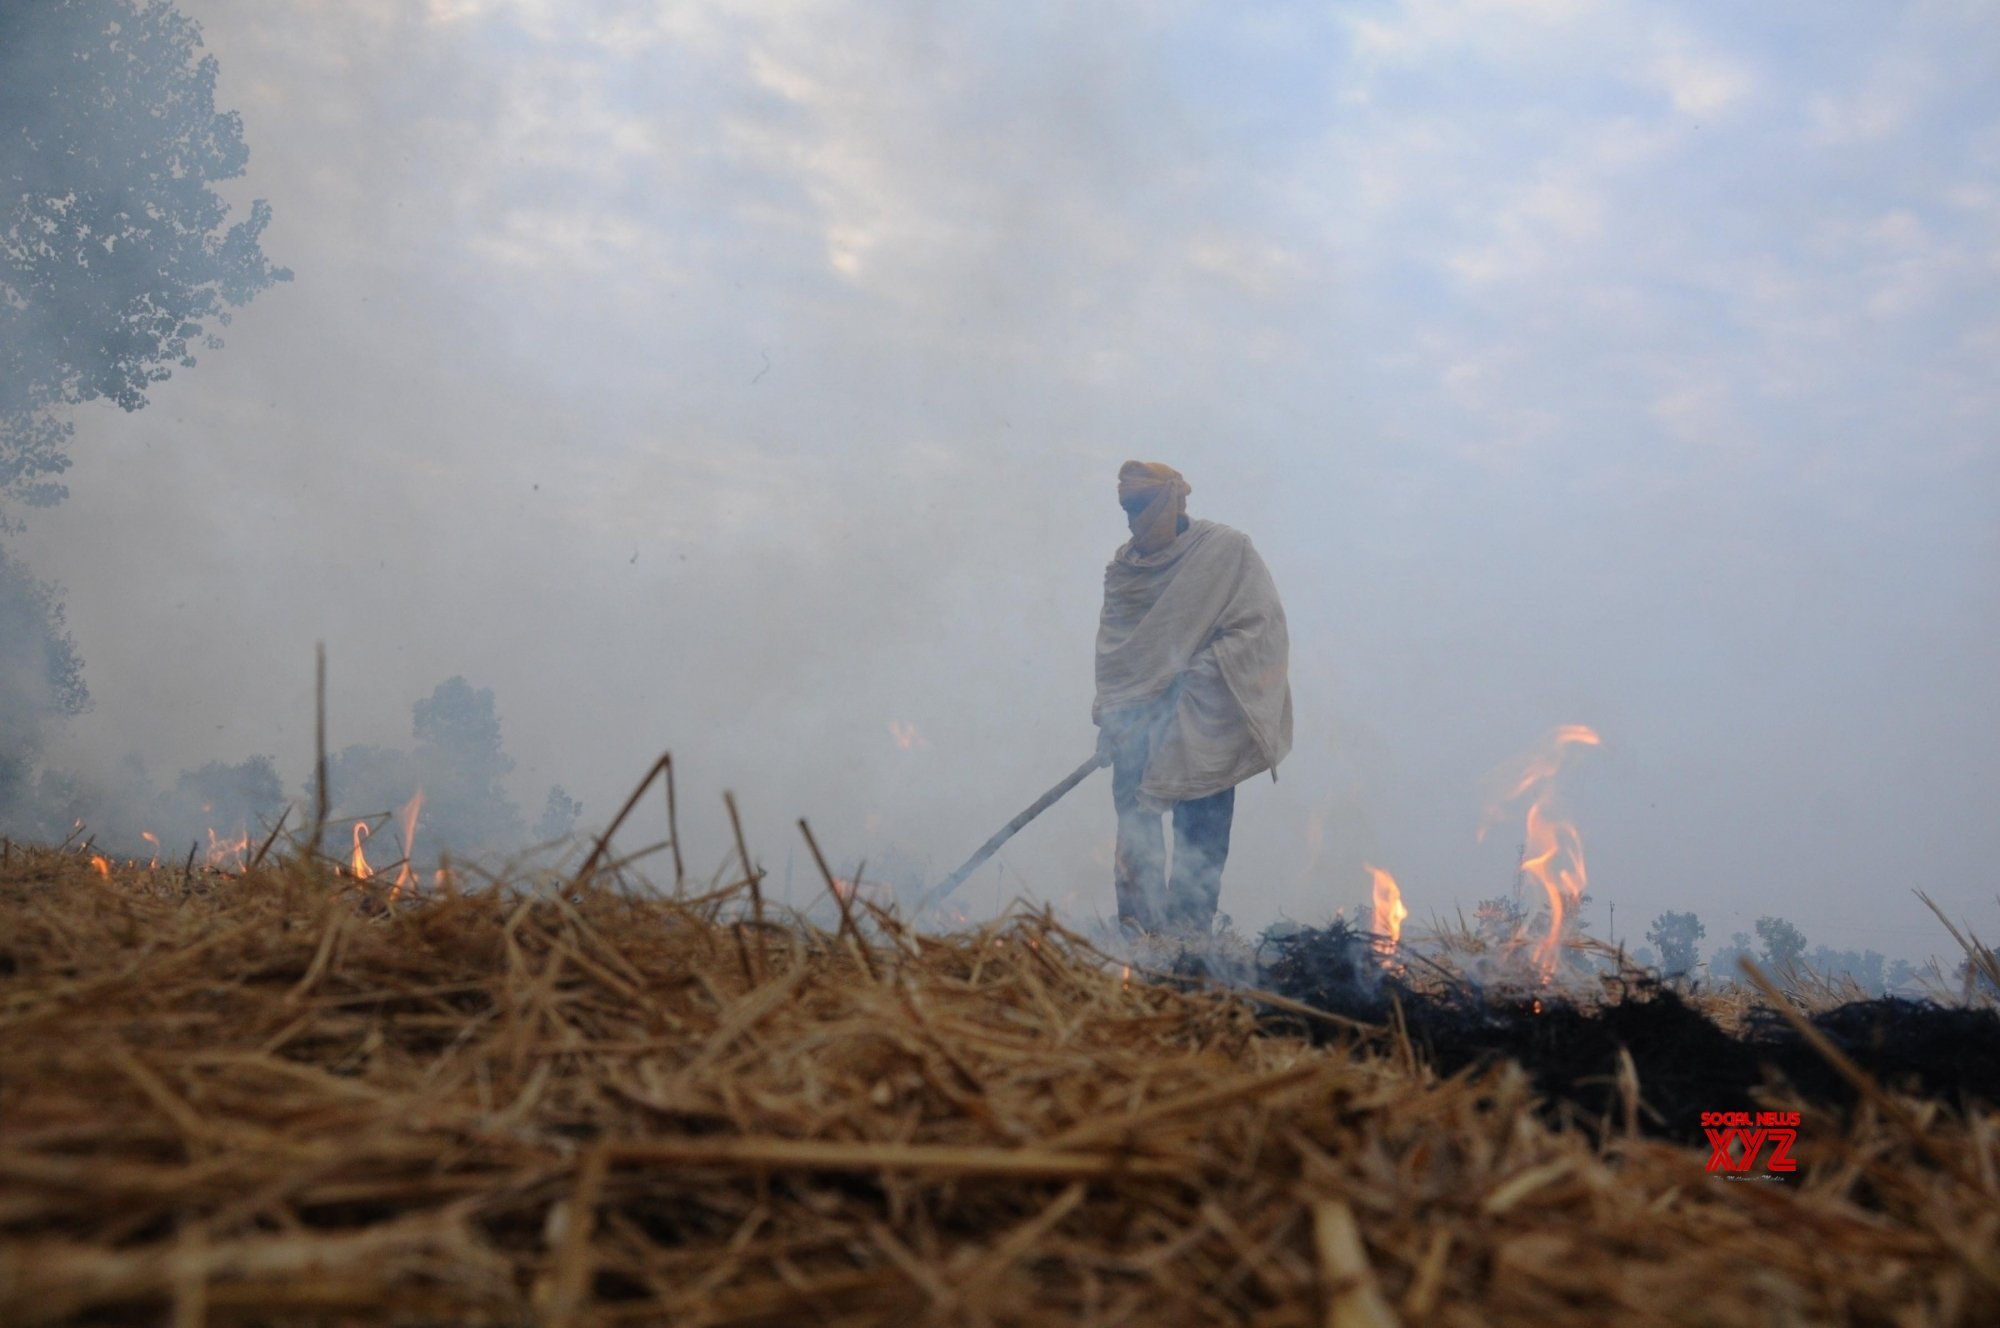 Agri fires aggravated in last decade causing more pollution